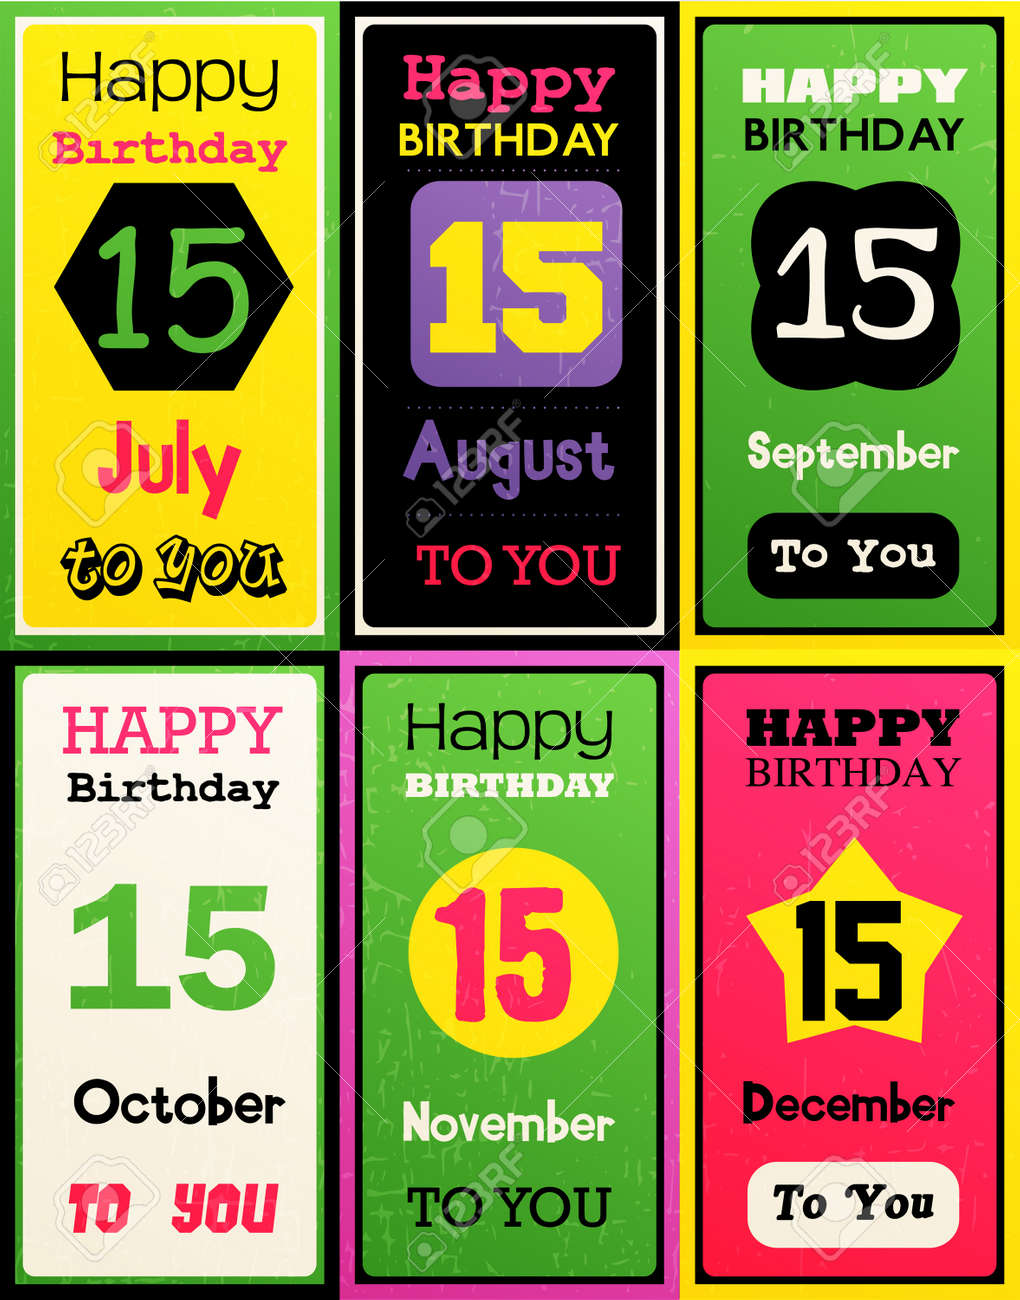 Greeting Happy birthday card,Month July, August, September, October,